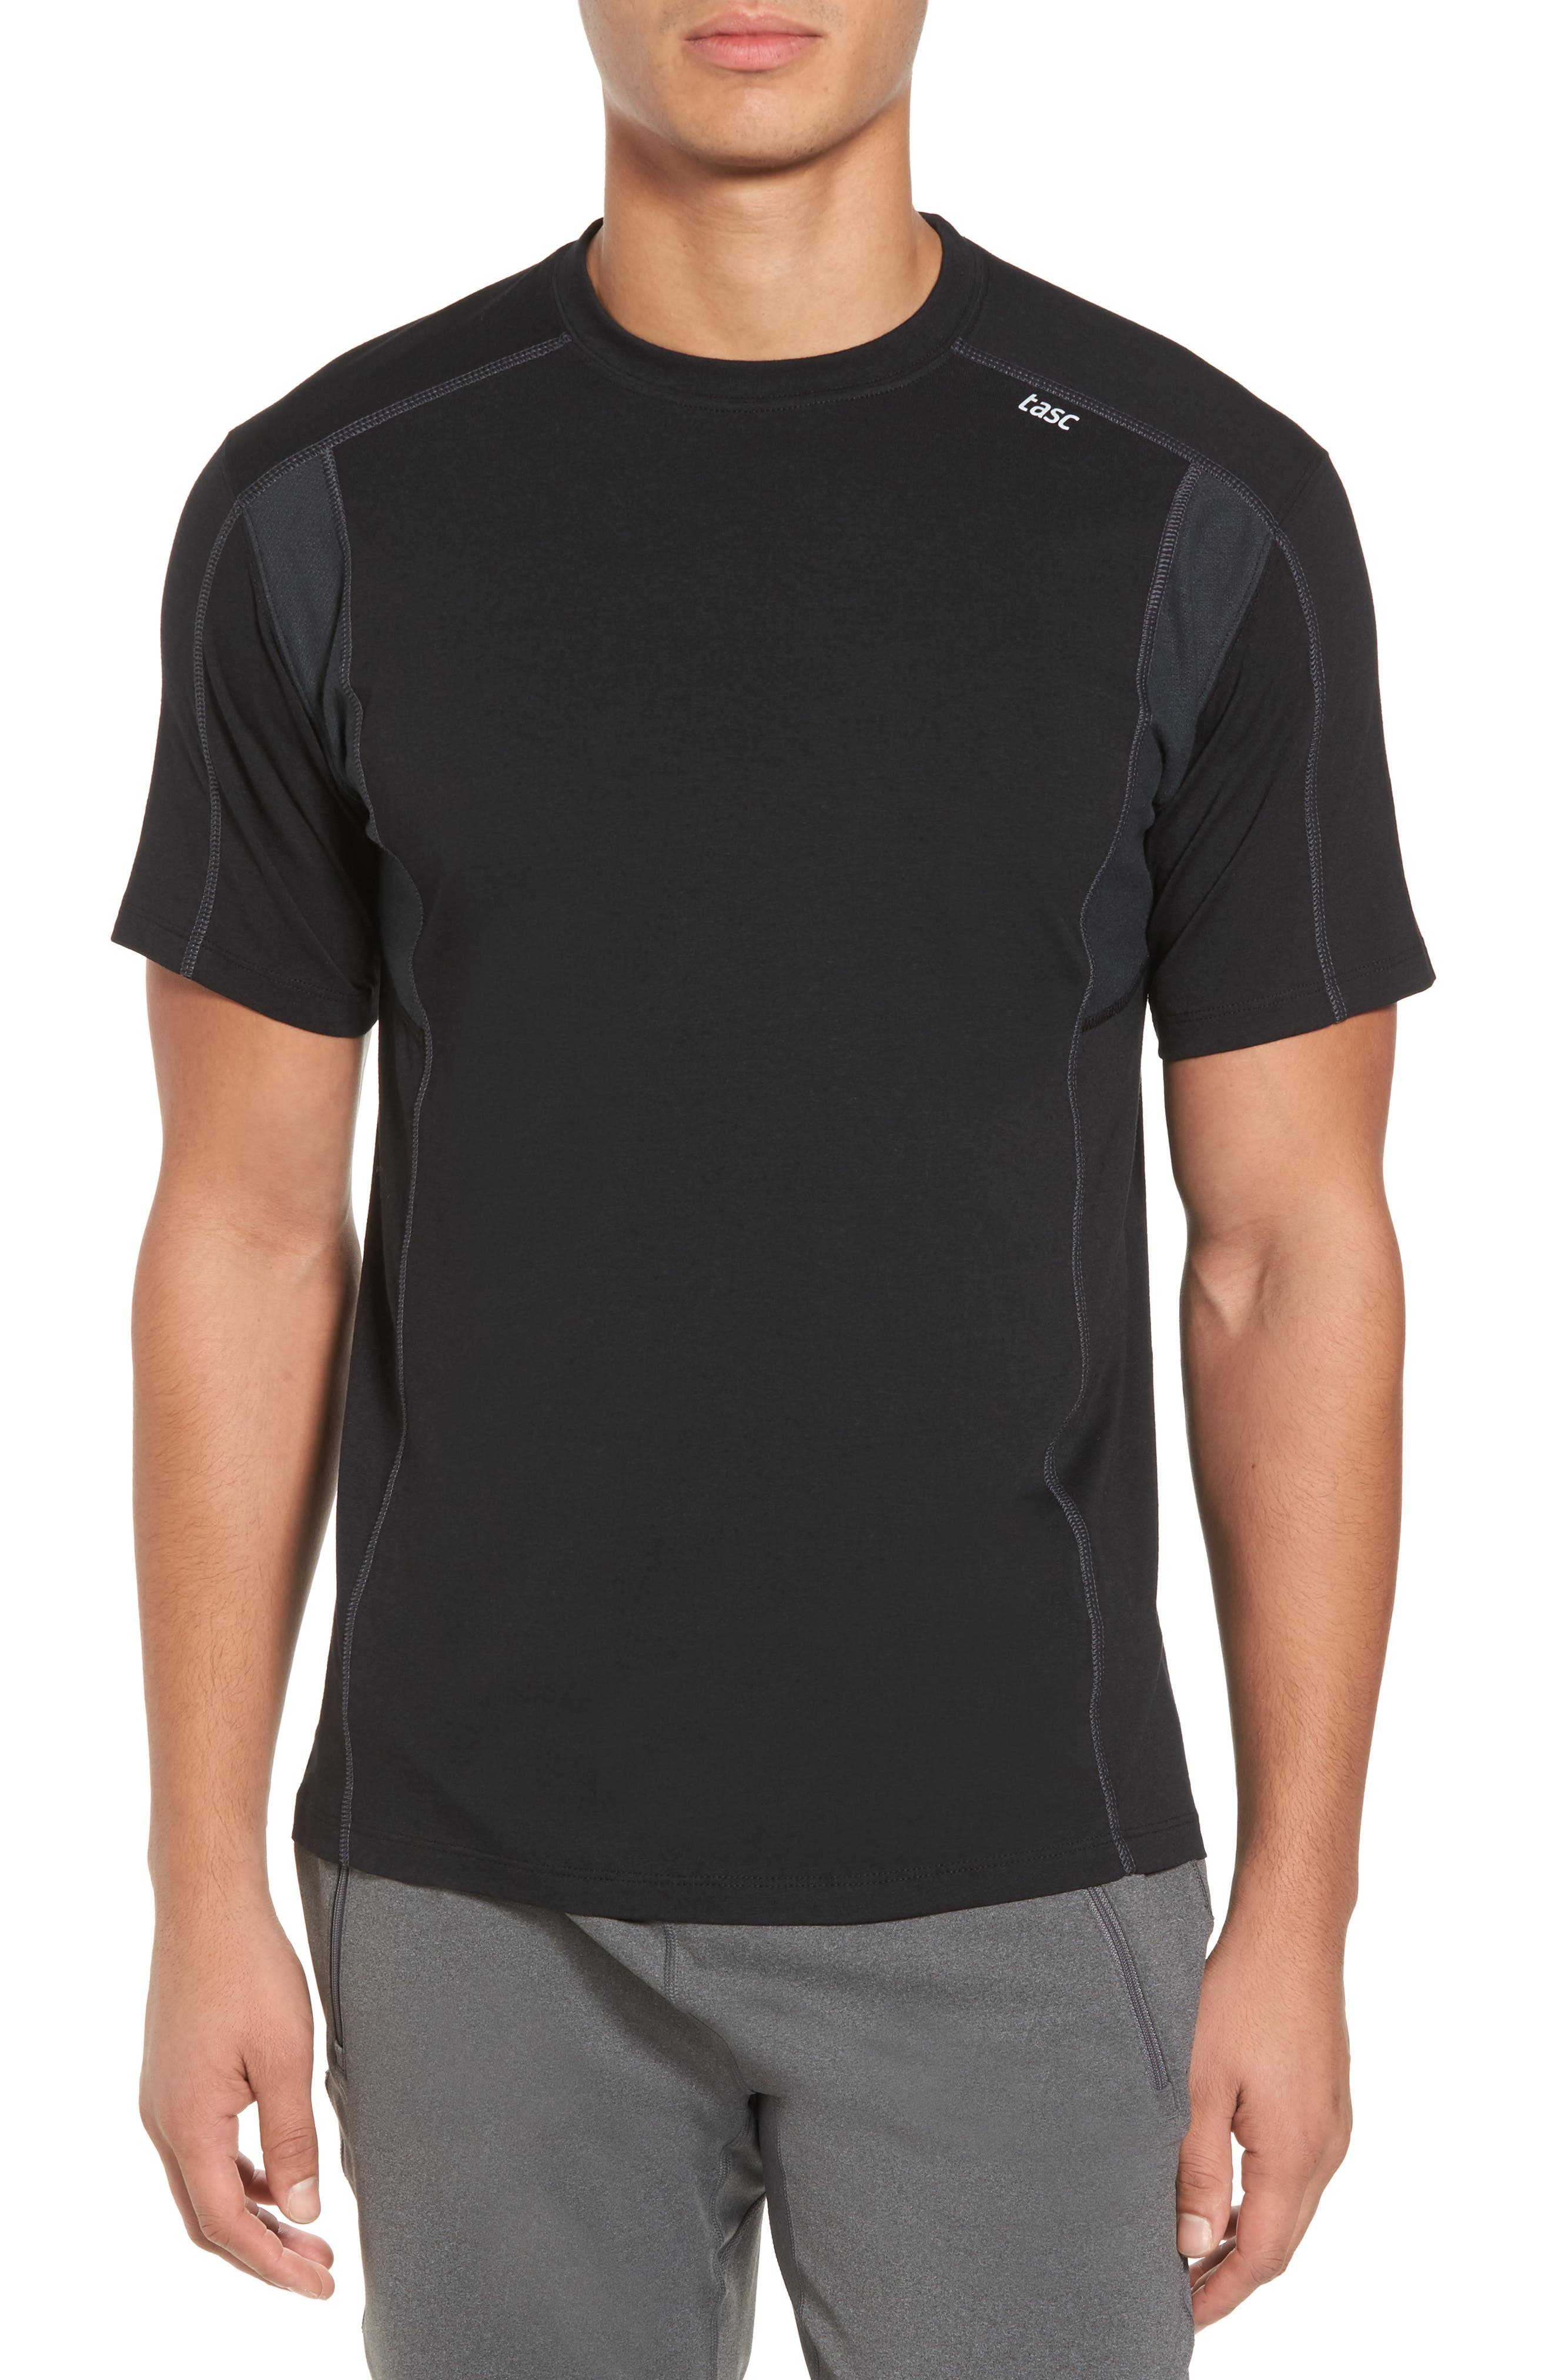 Charge Semi-Fitted T-Shirt,                         Main,                         color, Black/ Gunmetal